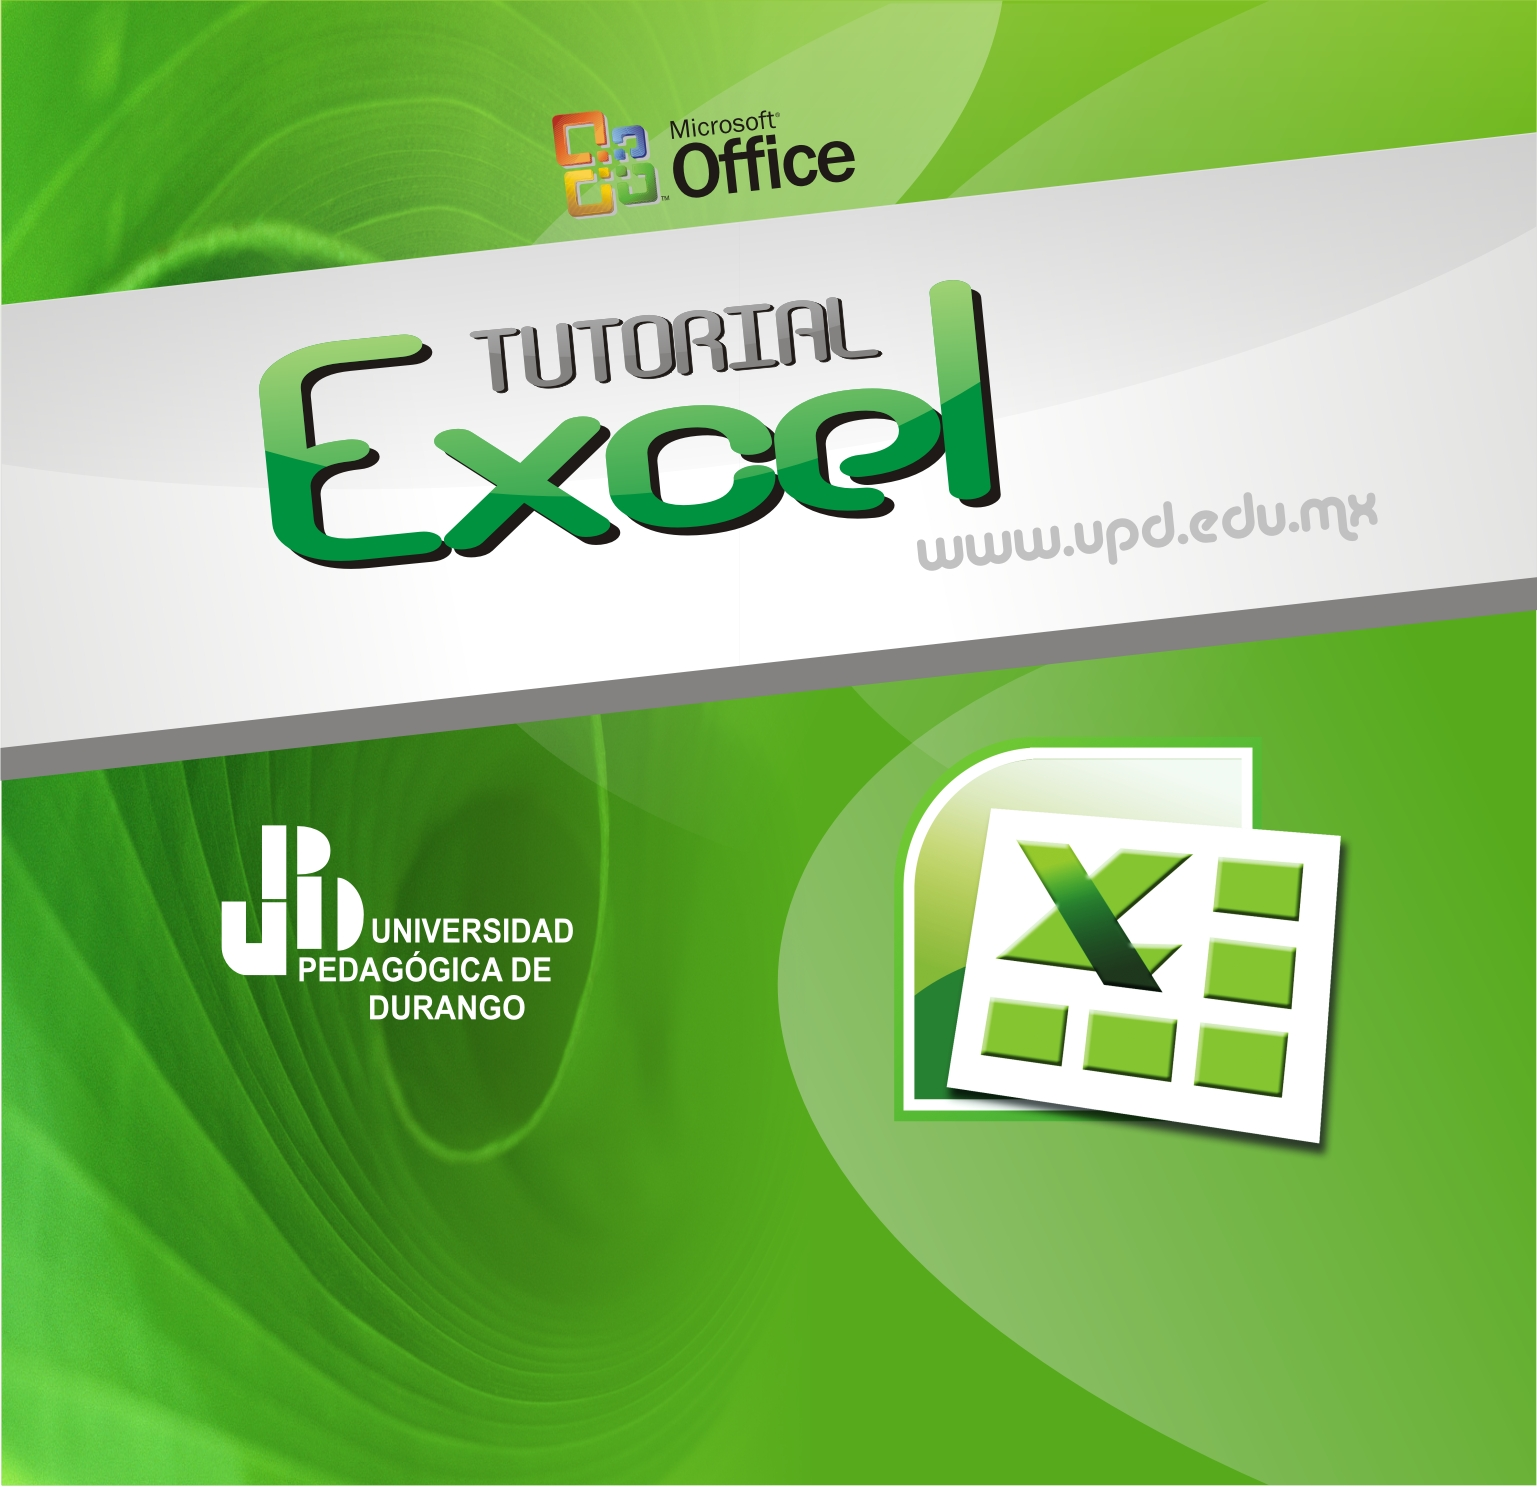 Ediblewildsus  Scenic The Basics Of Iwork Number For Ms Excel Users  Radical Hub With Inspiring Tutorexcel With Alluring Excel Template Extension Also Creating A Graph On Excel In Addition Microsoft Excel Mac Free And Vba Excel Copy Paste As Well As Excel Vba Display Message Additionally Excel Vba Function Return Value From Radicalhubcom With Ediblewildsus  Inspiring The Basics Of Iwork Number For Ms Excel Users  Radical Hub With Alluring Tutorexcel And Scenic Excel Template Extension Also Creating A Graph On Excel In Addition Microsoft Excel Mac Free From Radicalhubcom